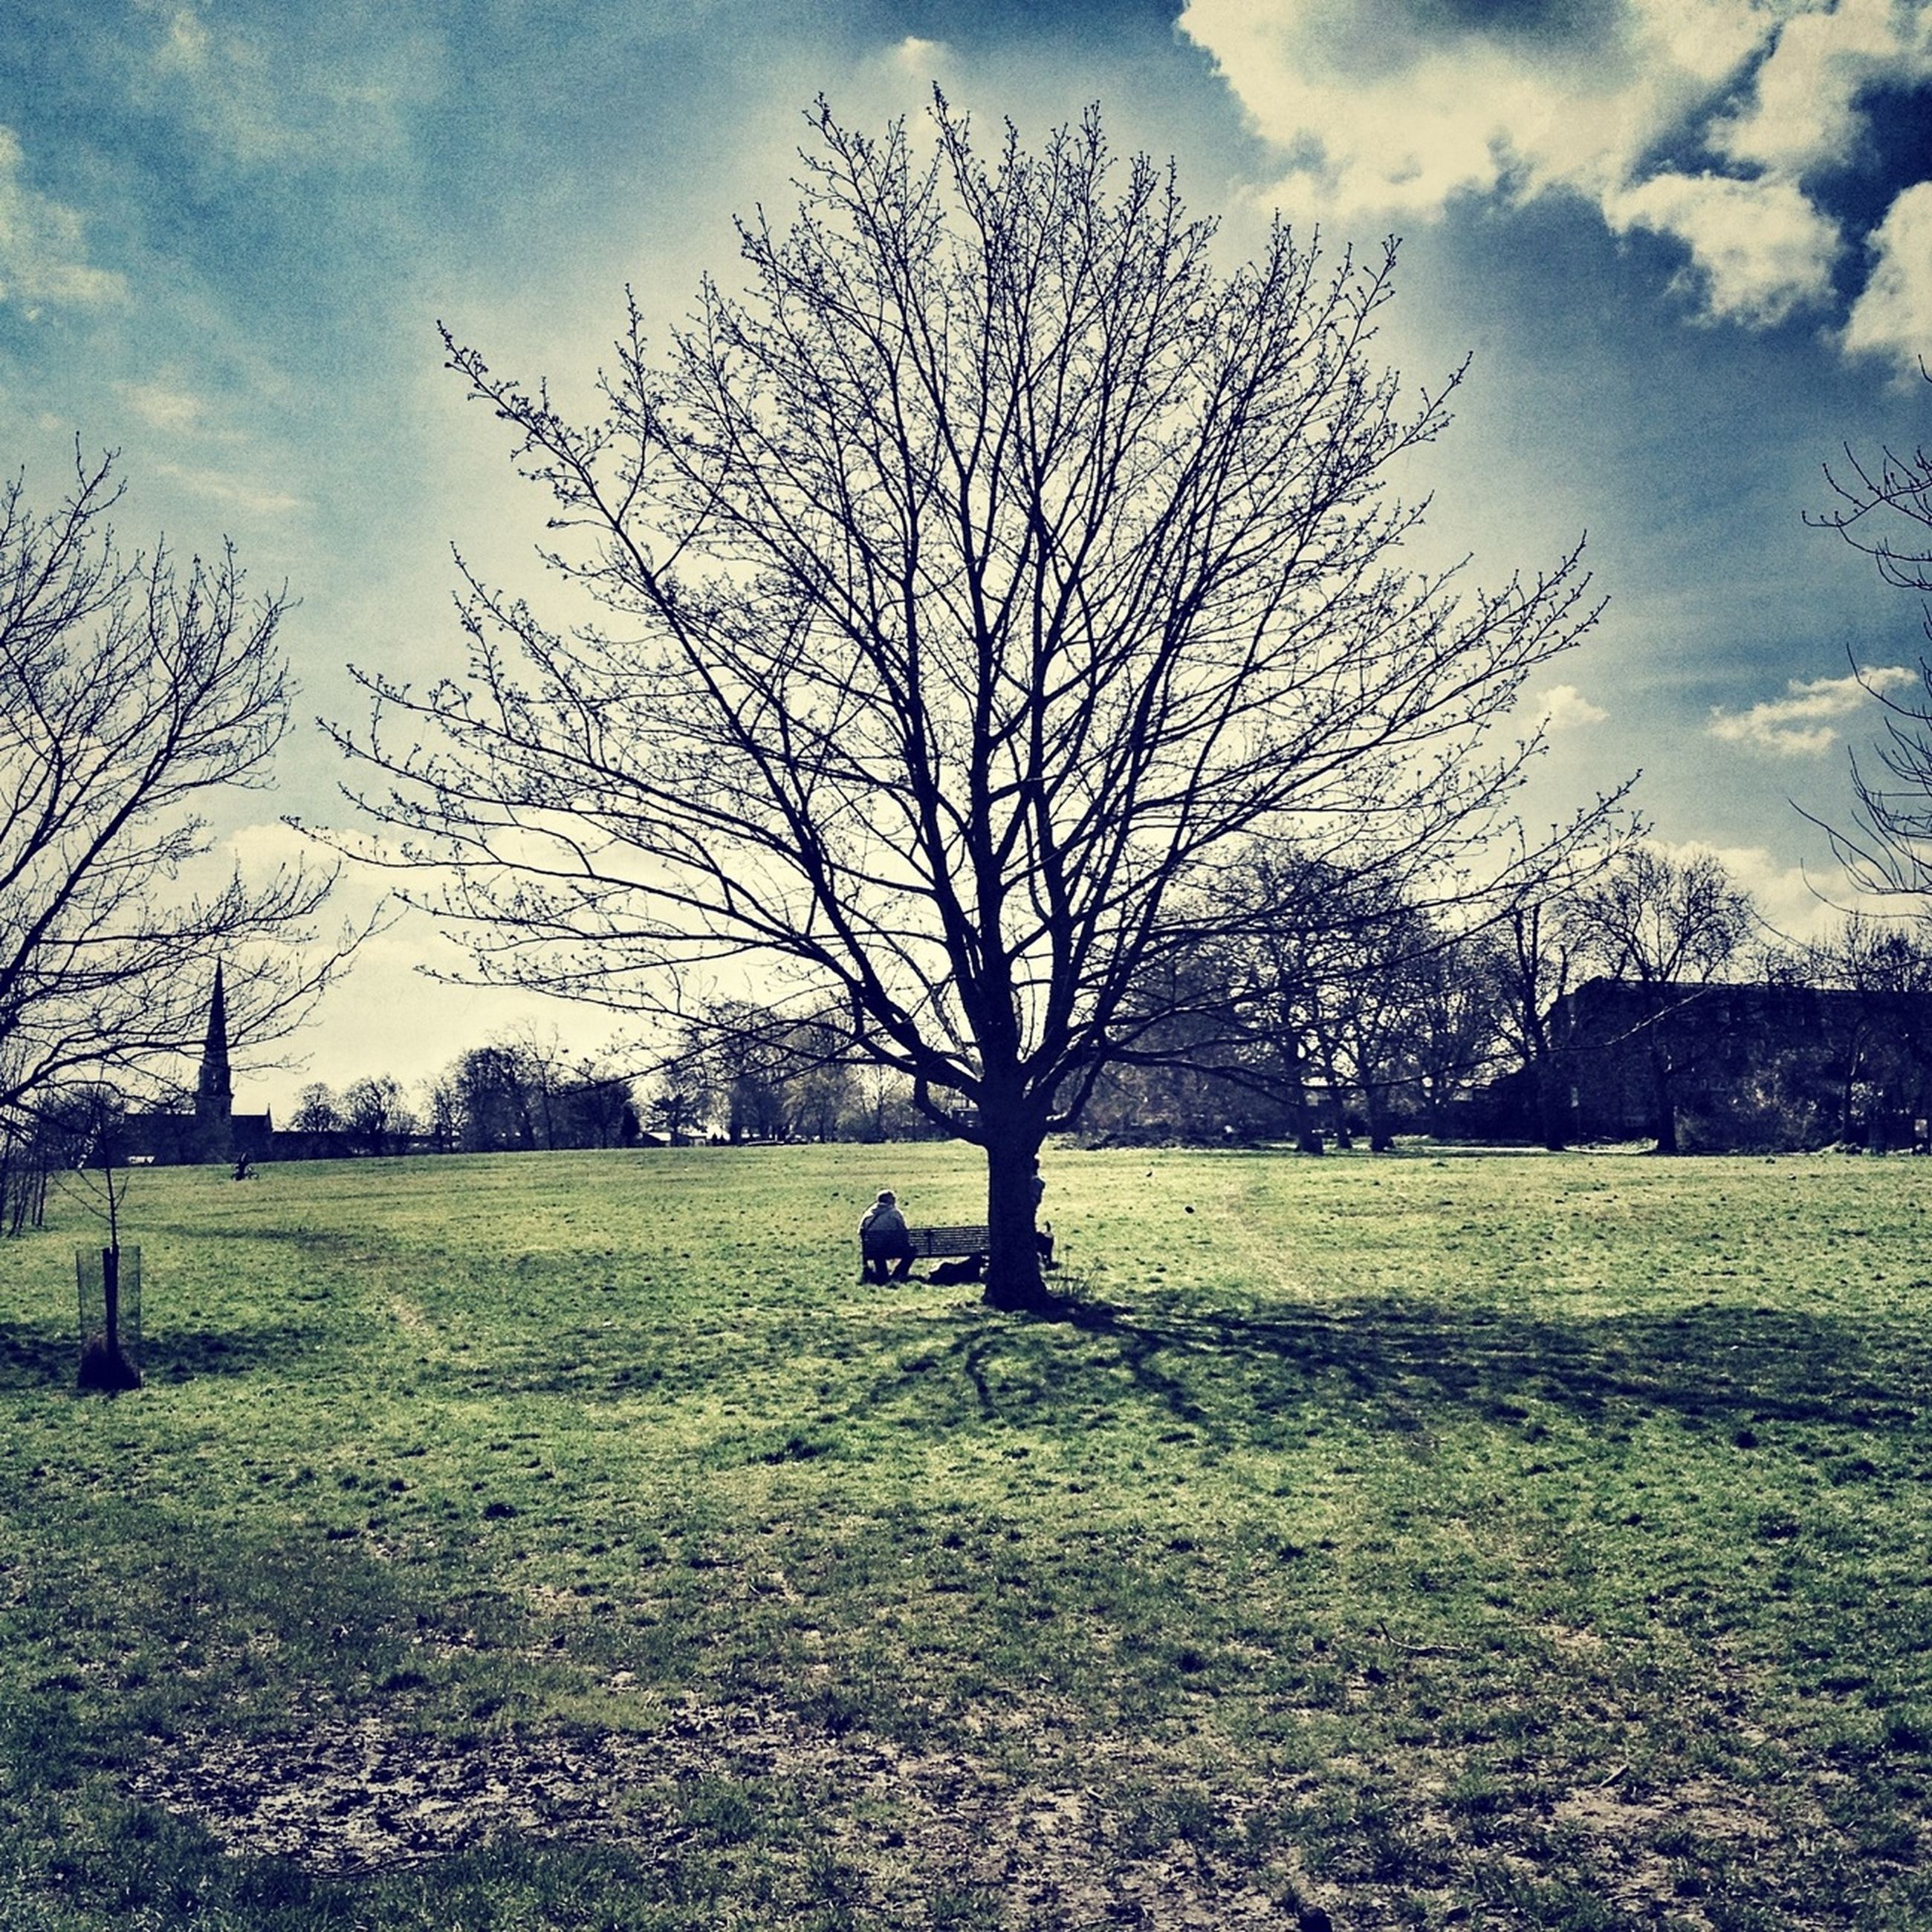 grass, tree, bare tree, sky, field, tranquility, branch, landscape, tranquil scene, grassy, cloud - sky, nature, cloud, beauty in nature, scenics, tree trunk, growth, shadow, day, park - man made space